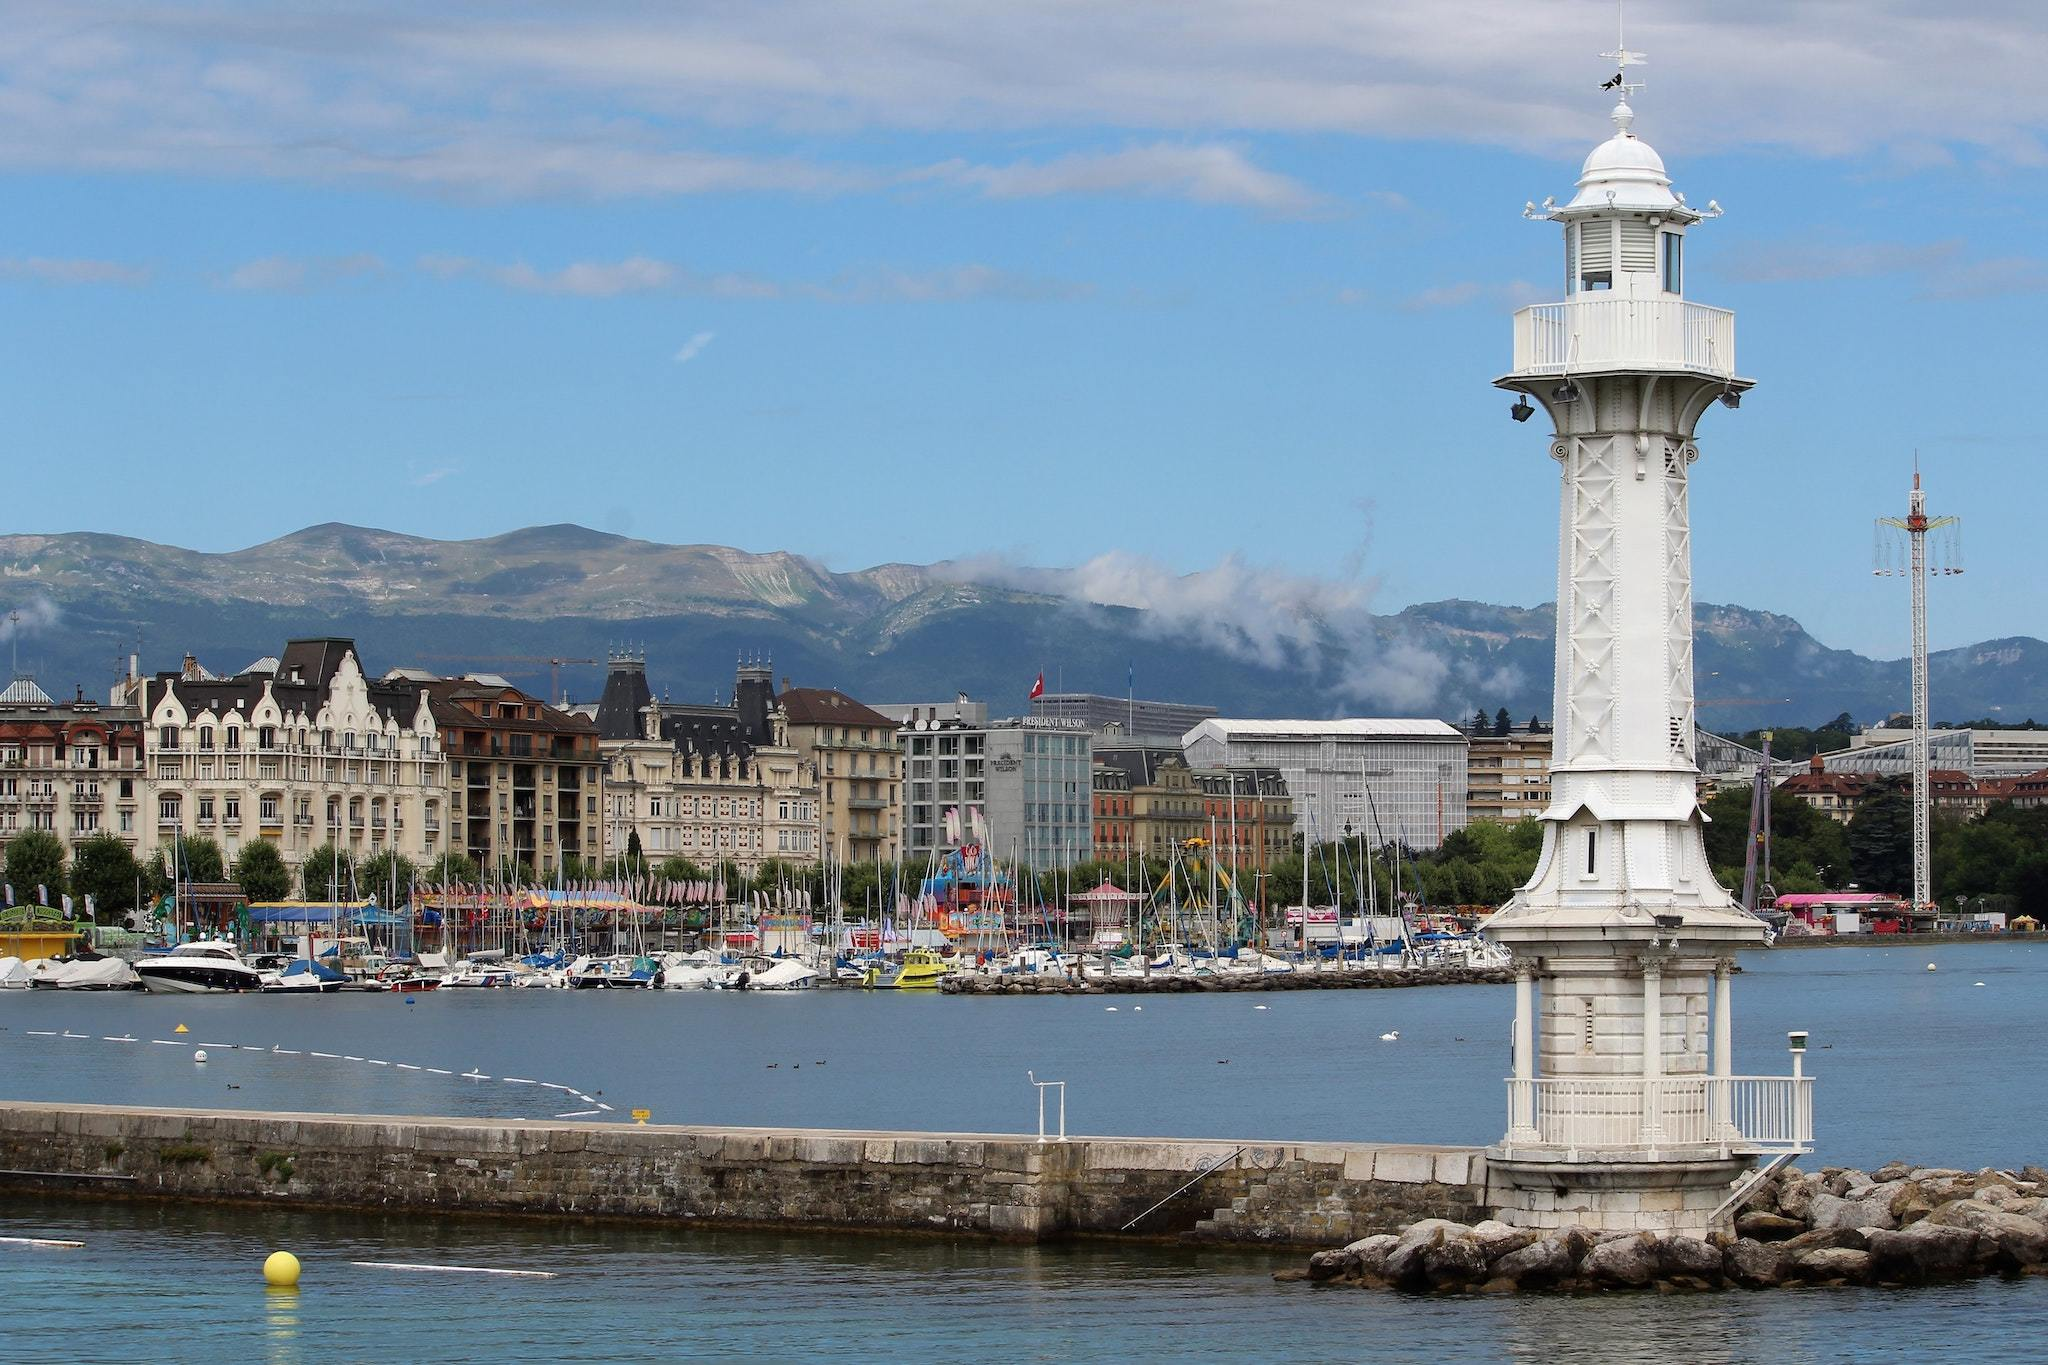 Geneva is giving tourists free money to spend in the city